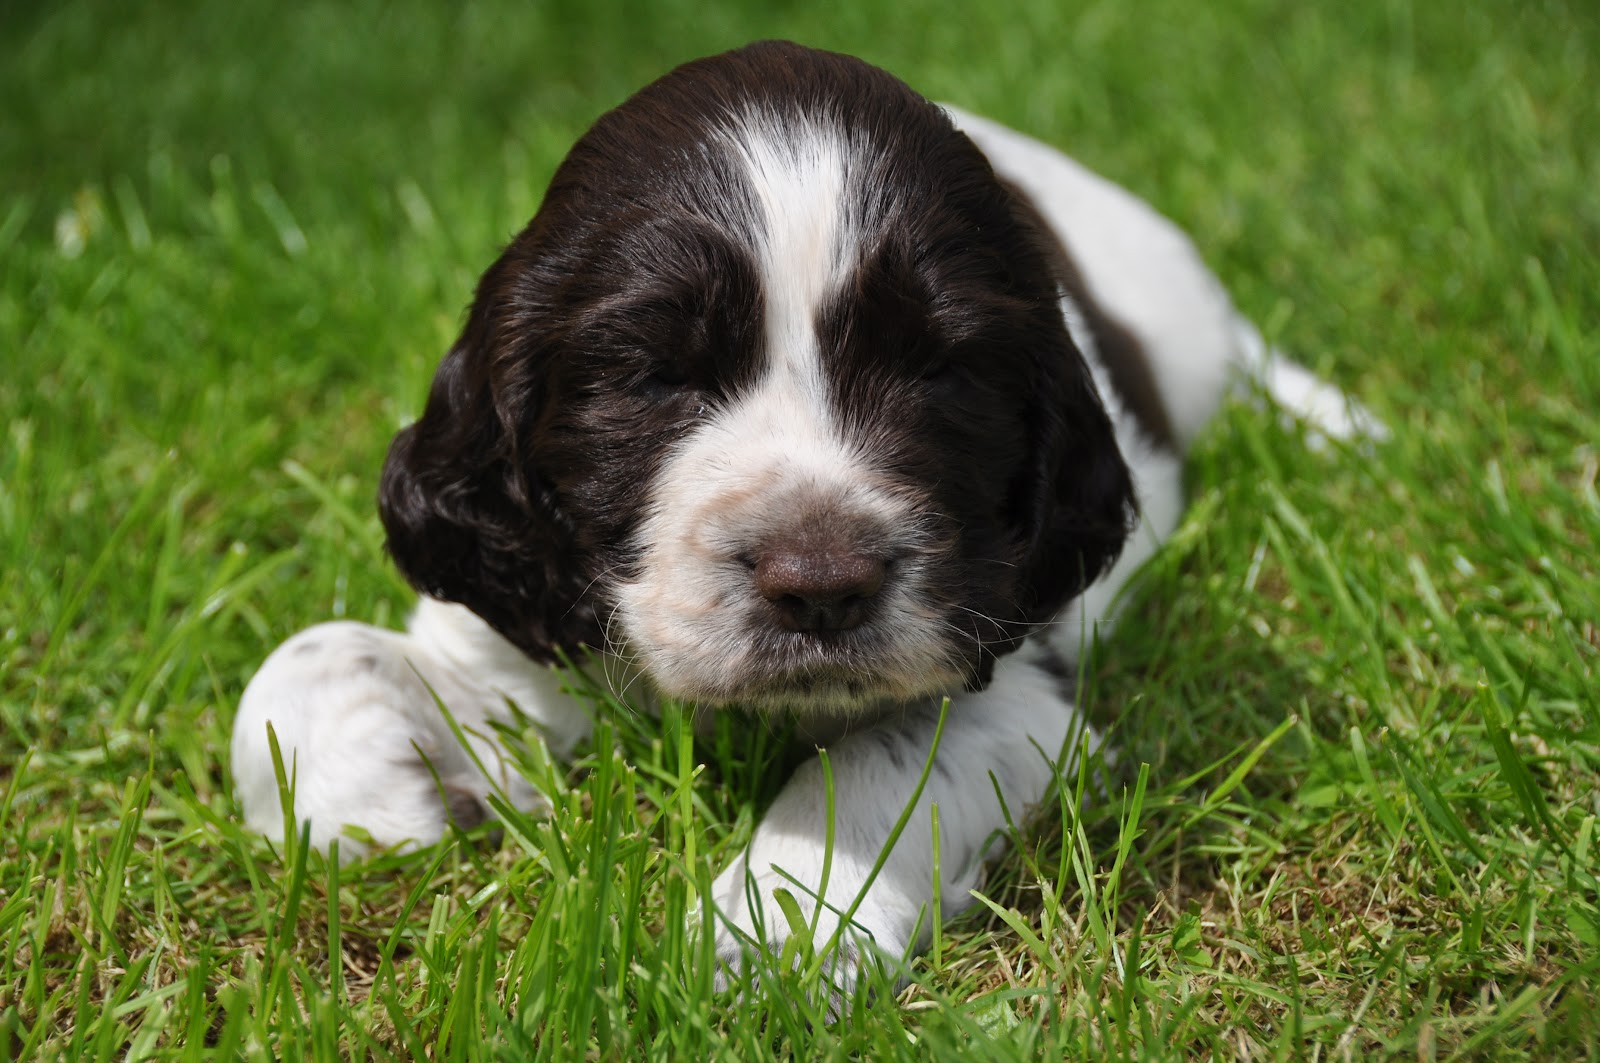 Add photos English Springer Spaniel puppy on the grass in your blog: